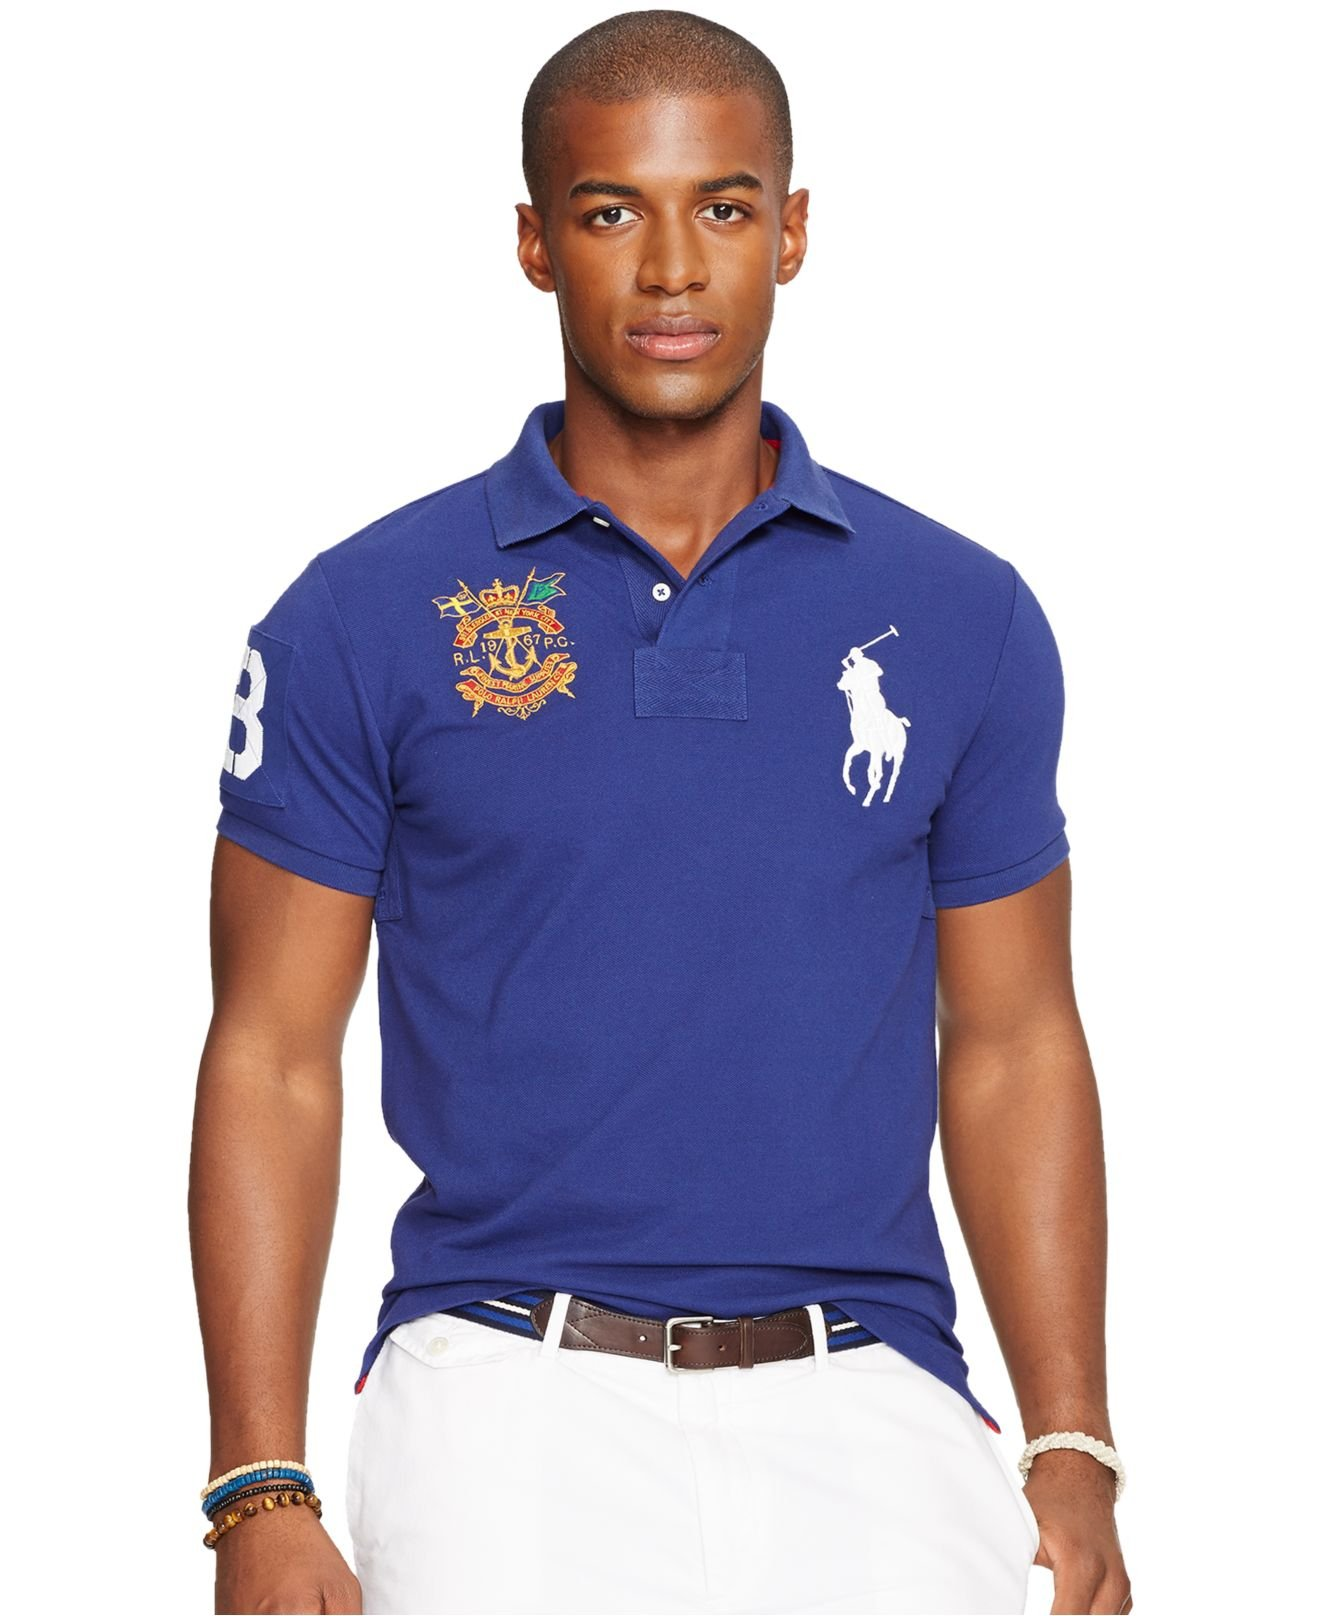 Polo ralph lauren Custom-Fit Big Pony Mesh Polo Shirt in Blue for Men (